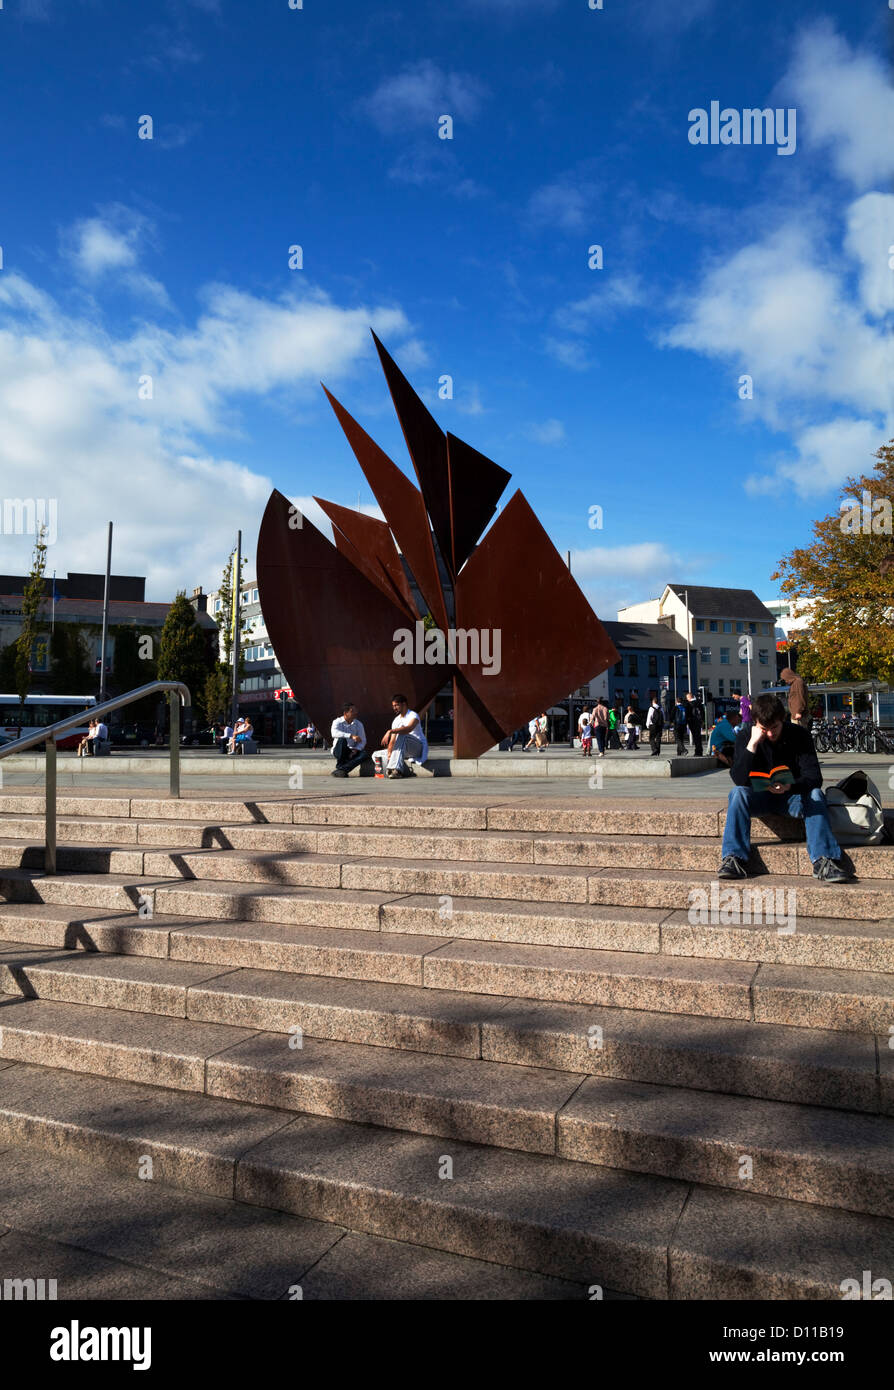 The Quincentennial 'Sails' Sculpture in Eyre Square by Derry born sculpture Éamonn O'Doherty, Galway - Stock Image